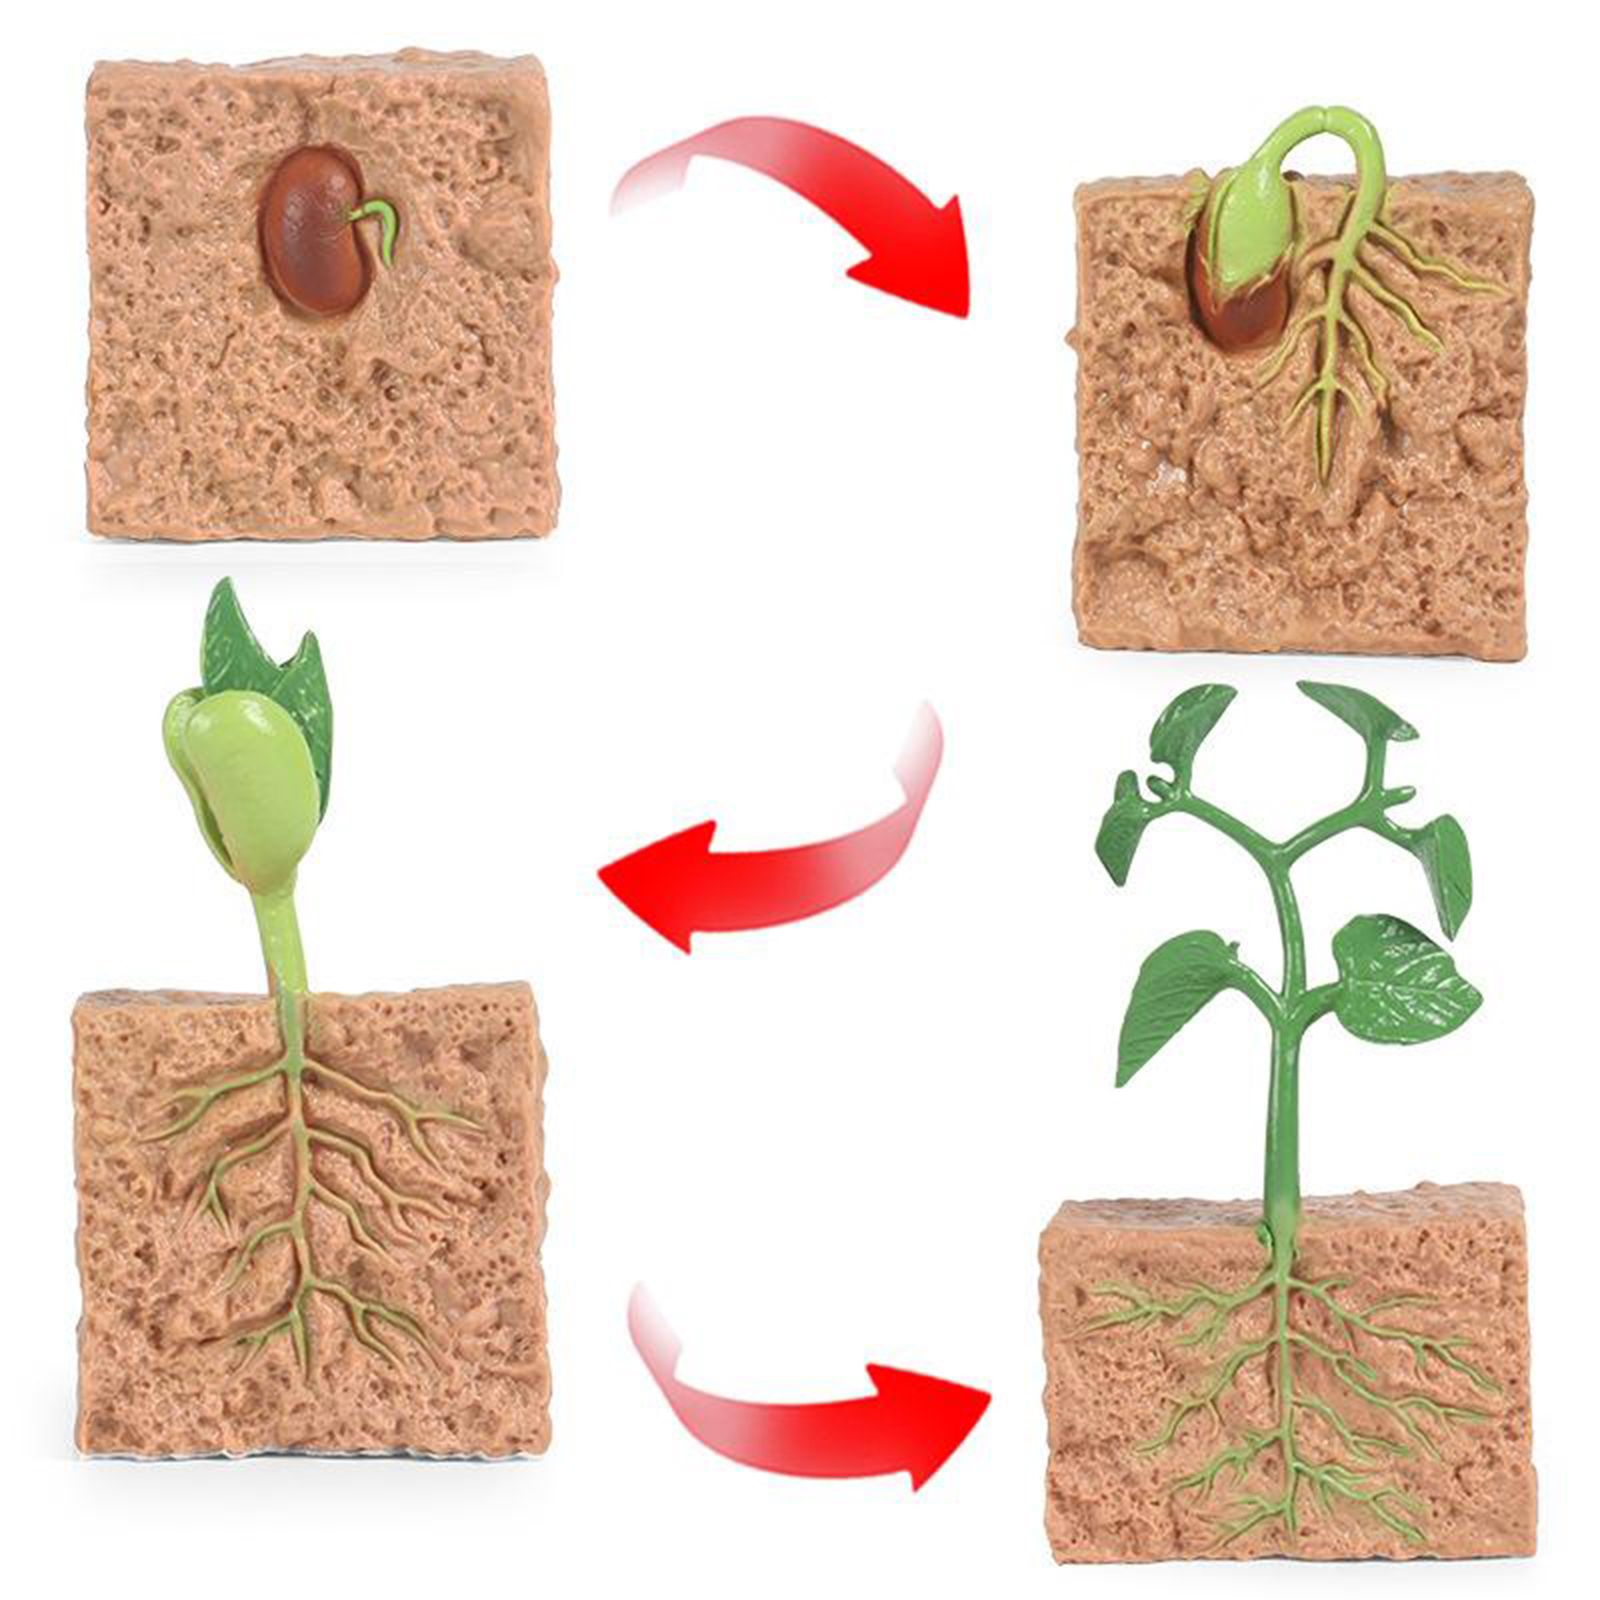 Kids Plant Seeds Growth Life Cycle Playset Cognitive Toys Teaching Aids 3